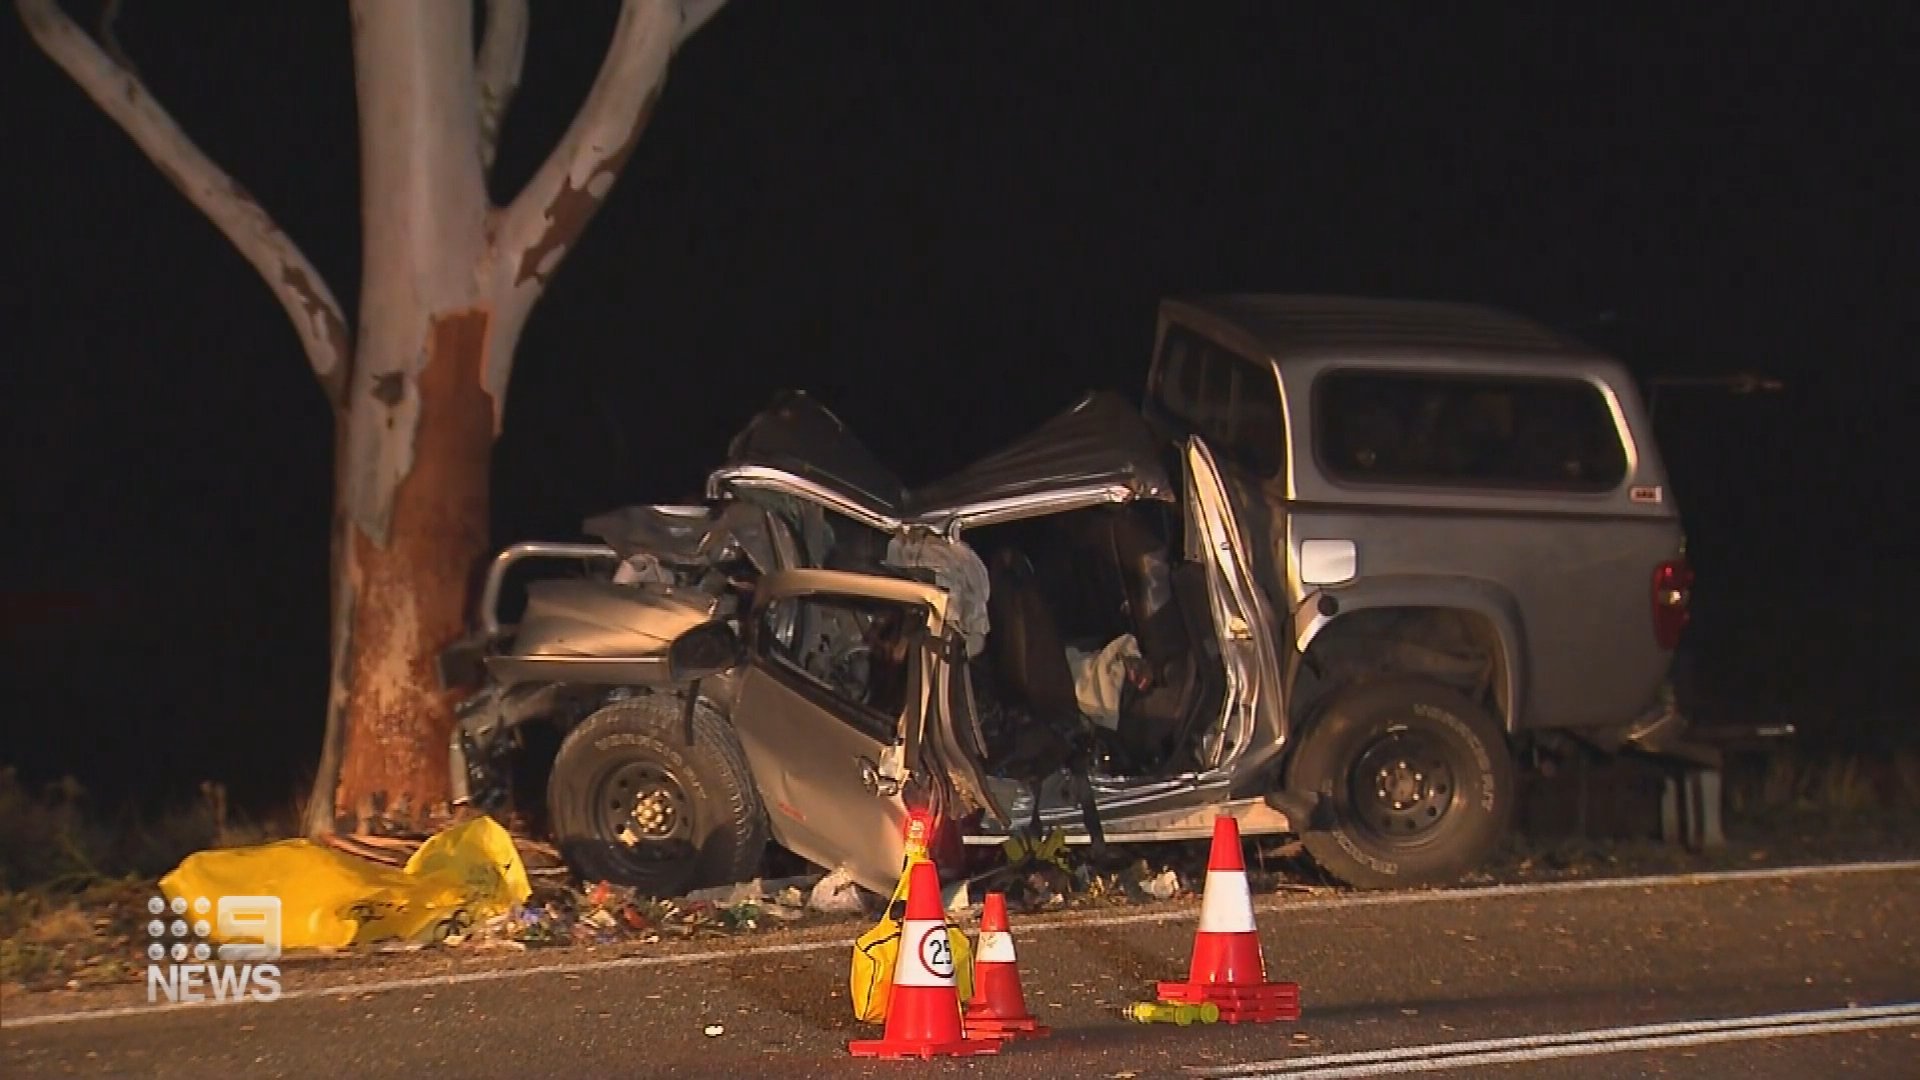 Two dead, boy fighting for life after horror crash in South Australia